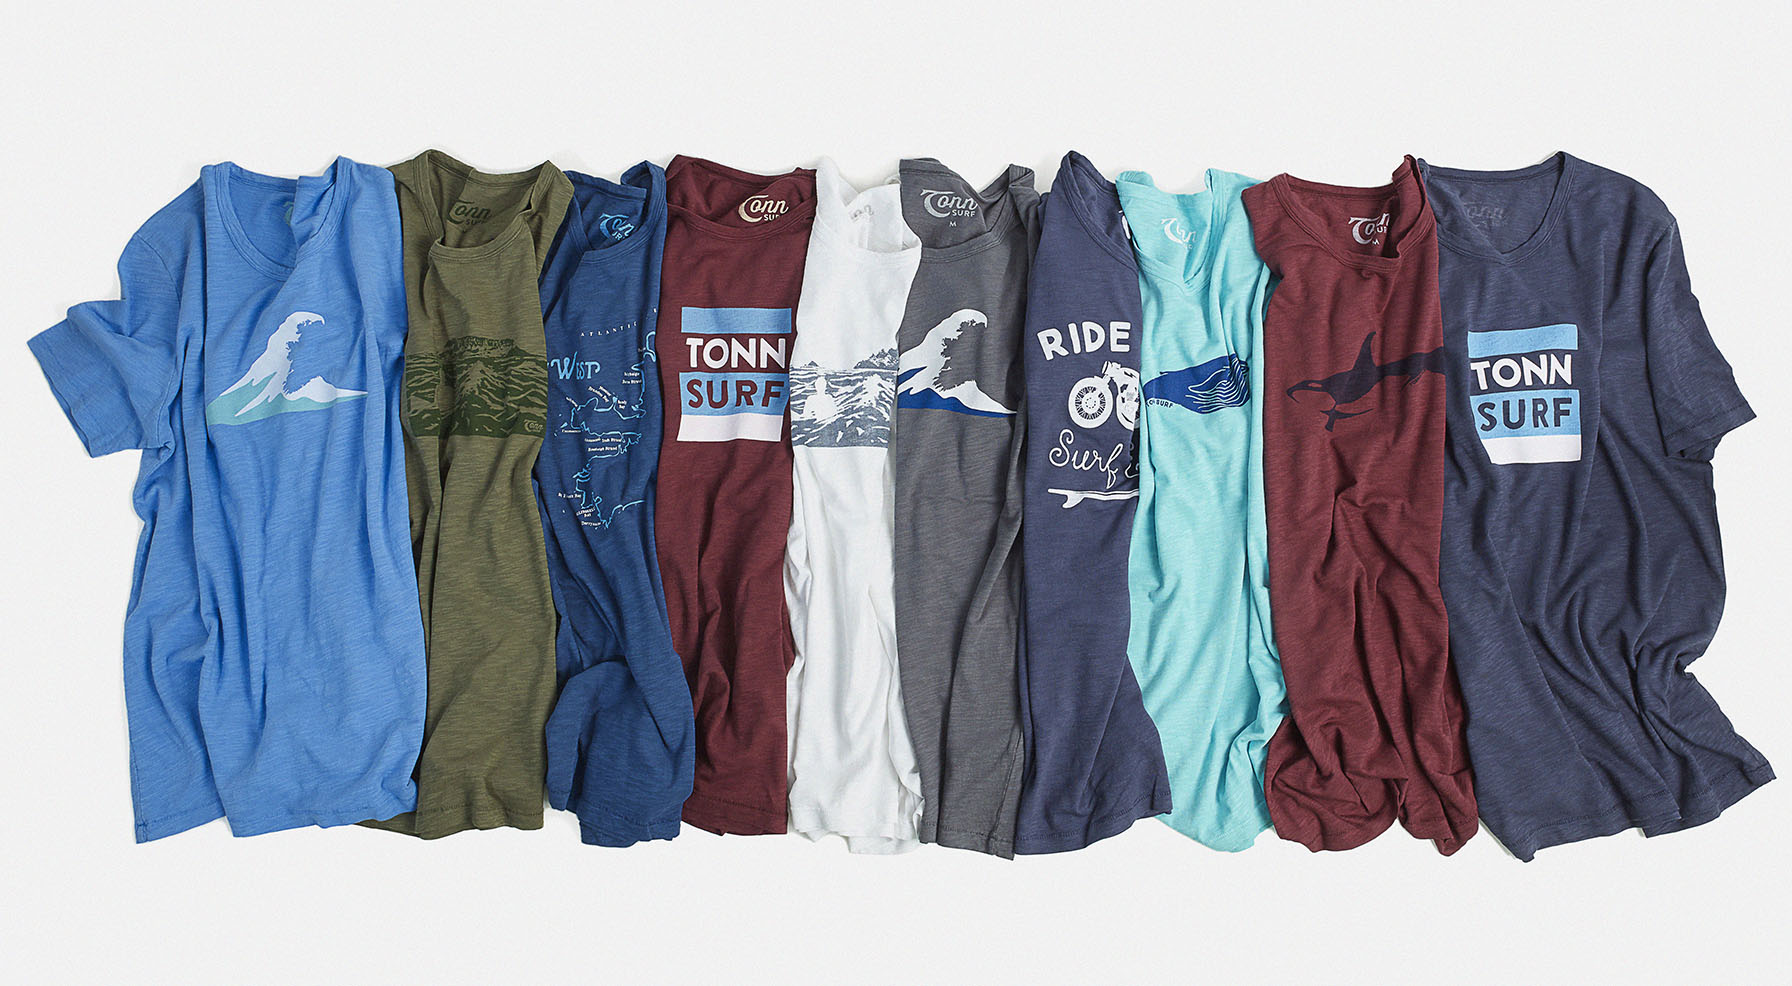 Tonn 100% Organic Cotton tees - best tees ever!!